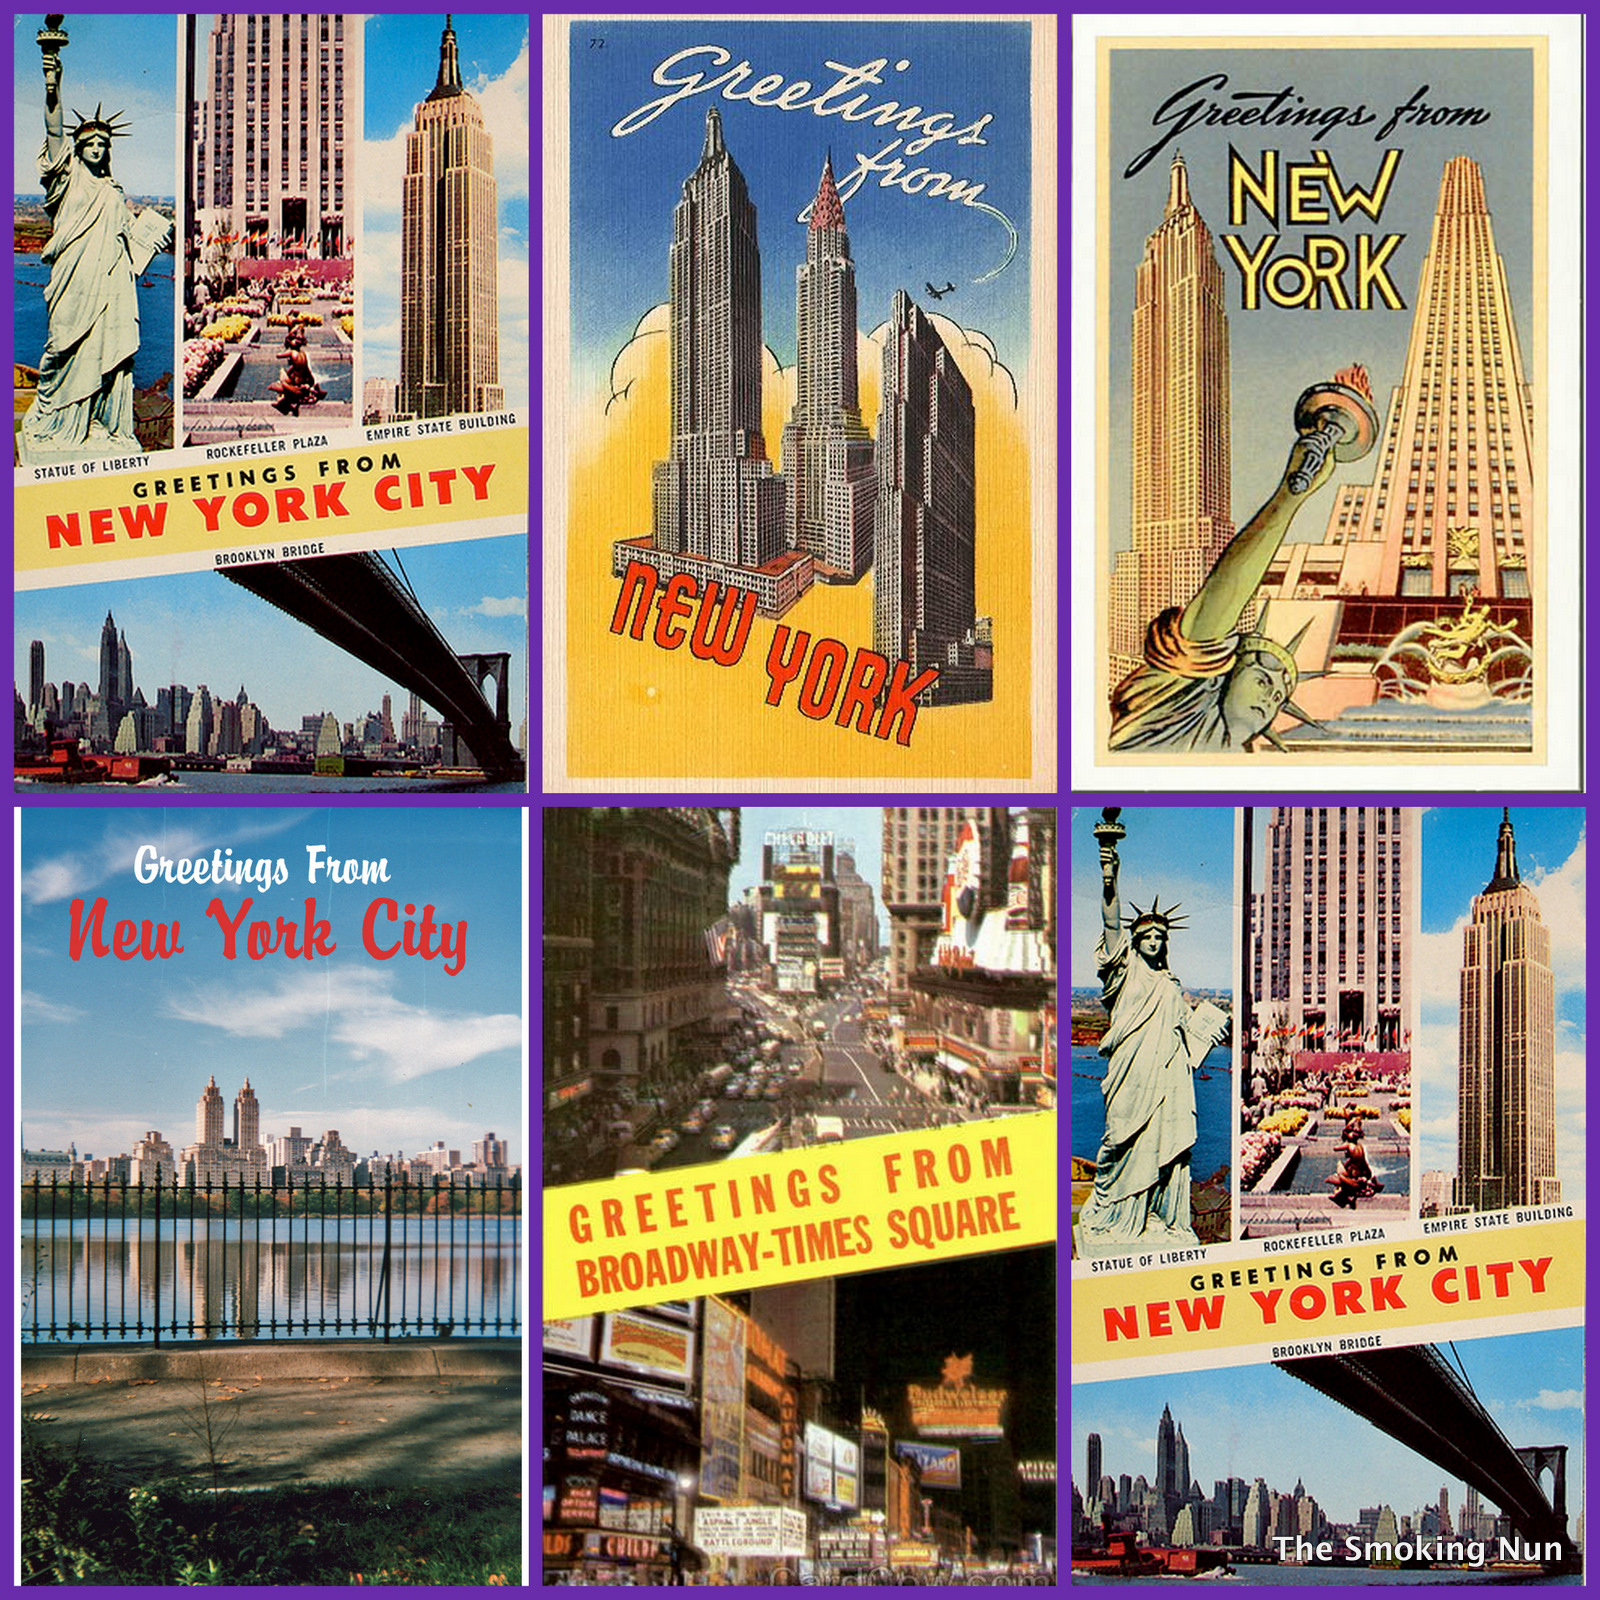 Nyc Vintage Nyc Vintage Image Of The Day Greetings From New York